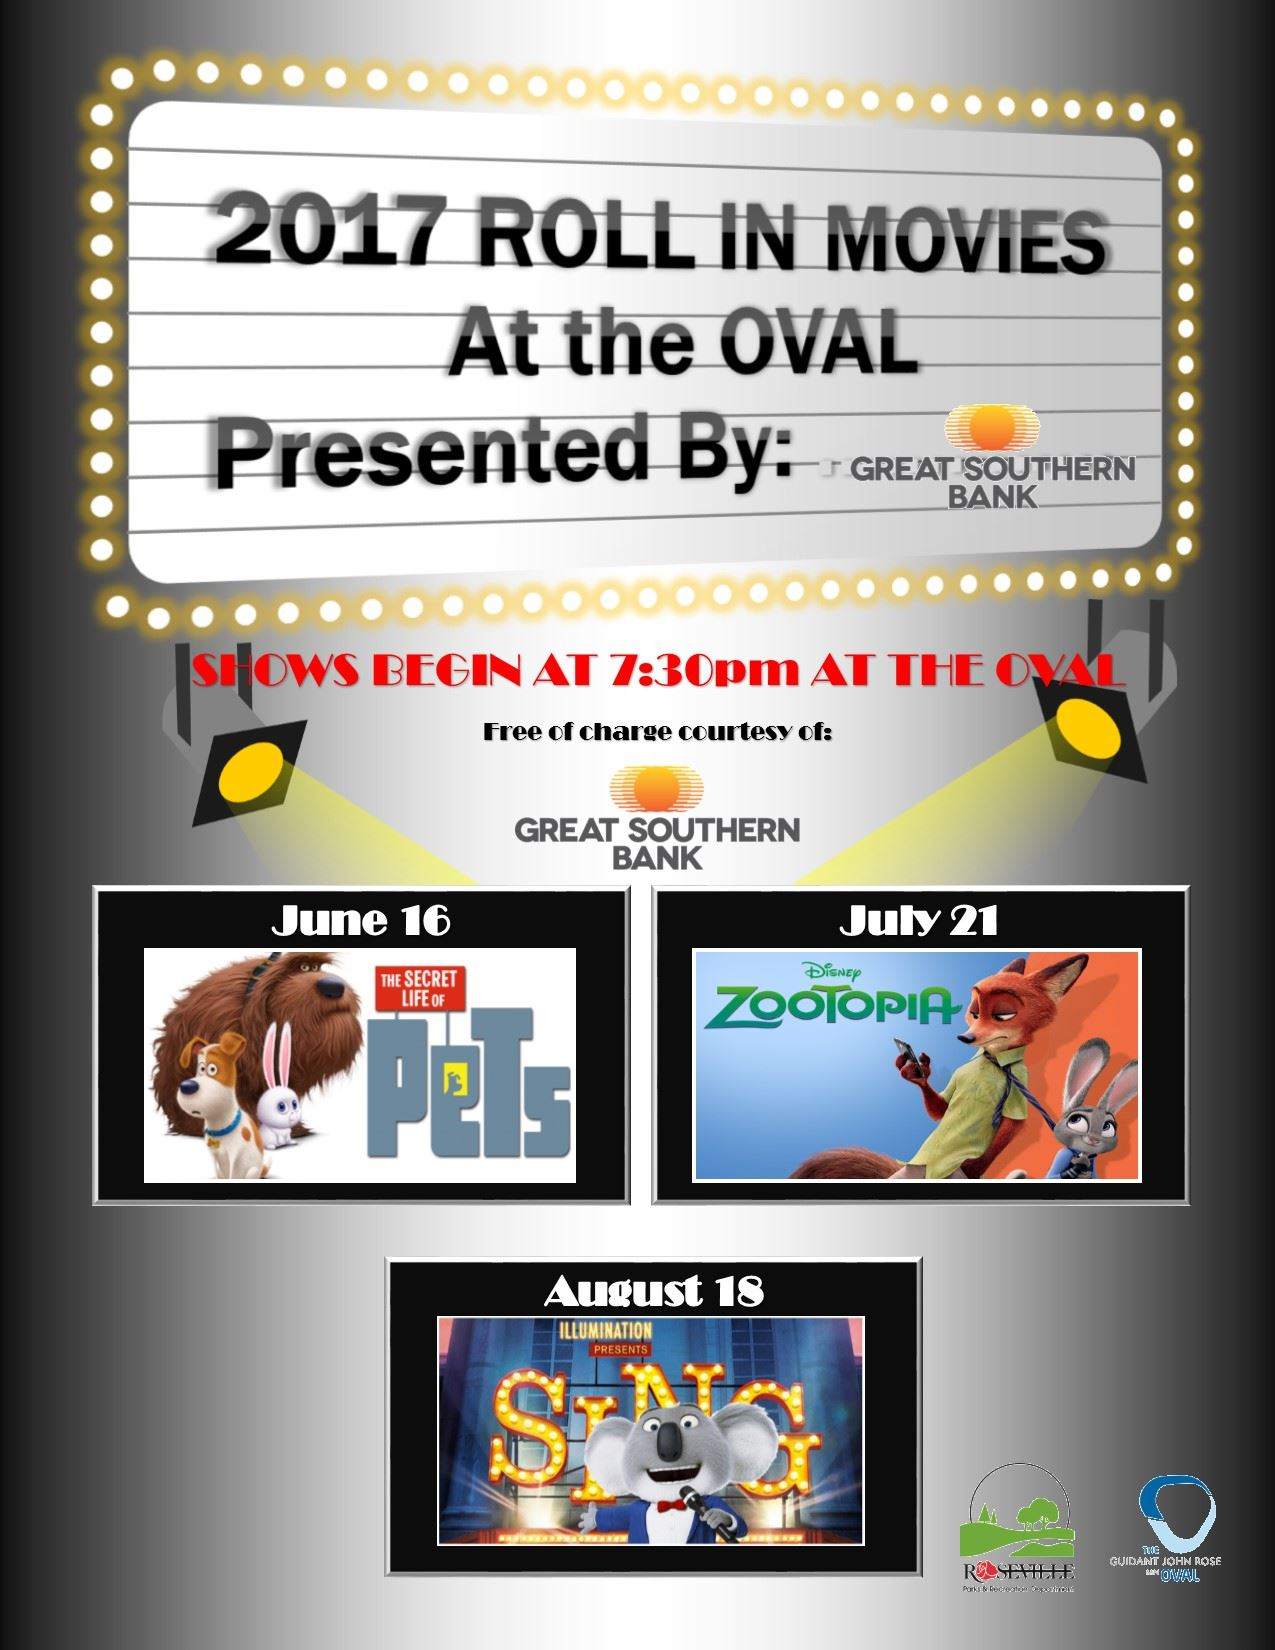 Roll in Movie Schedule, 2017